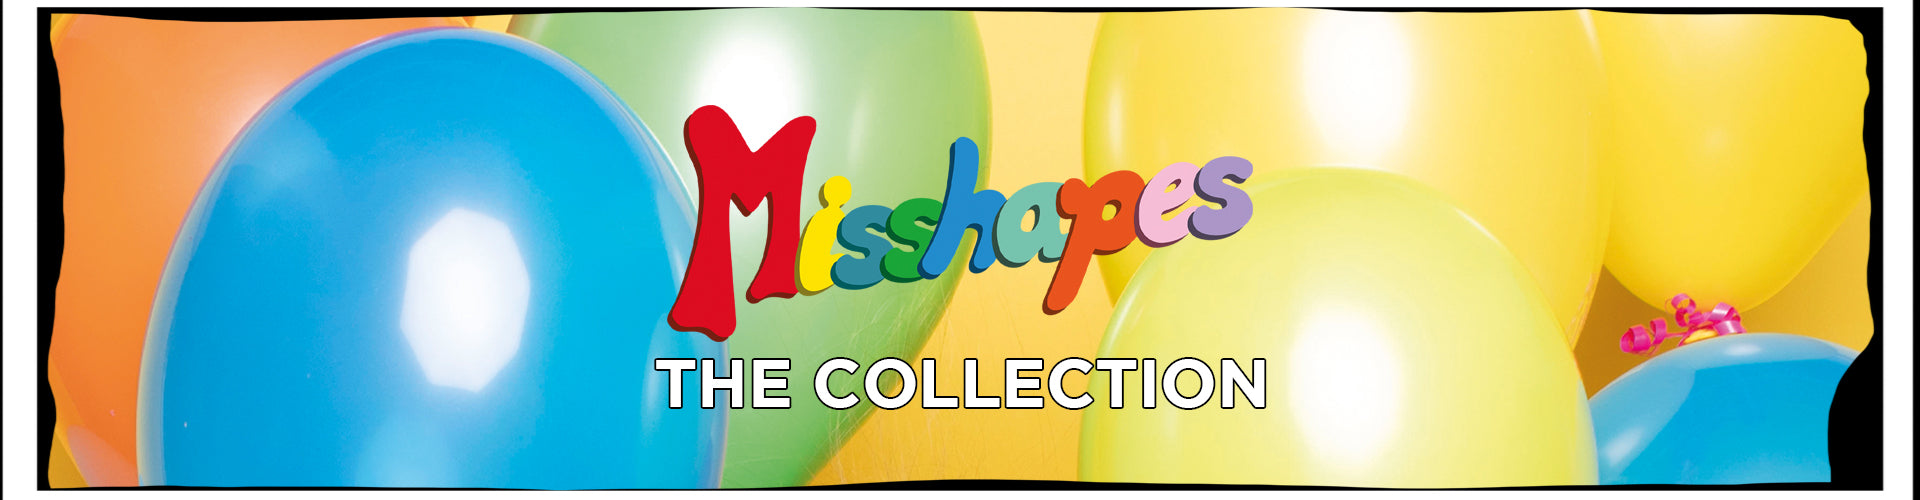 Misshapes: The Collection